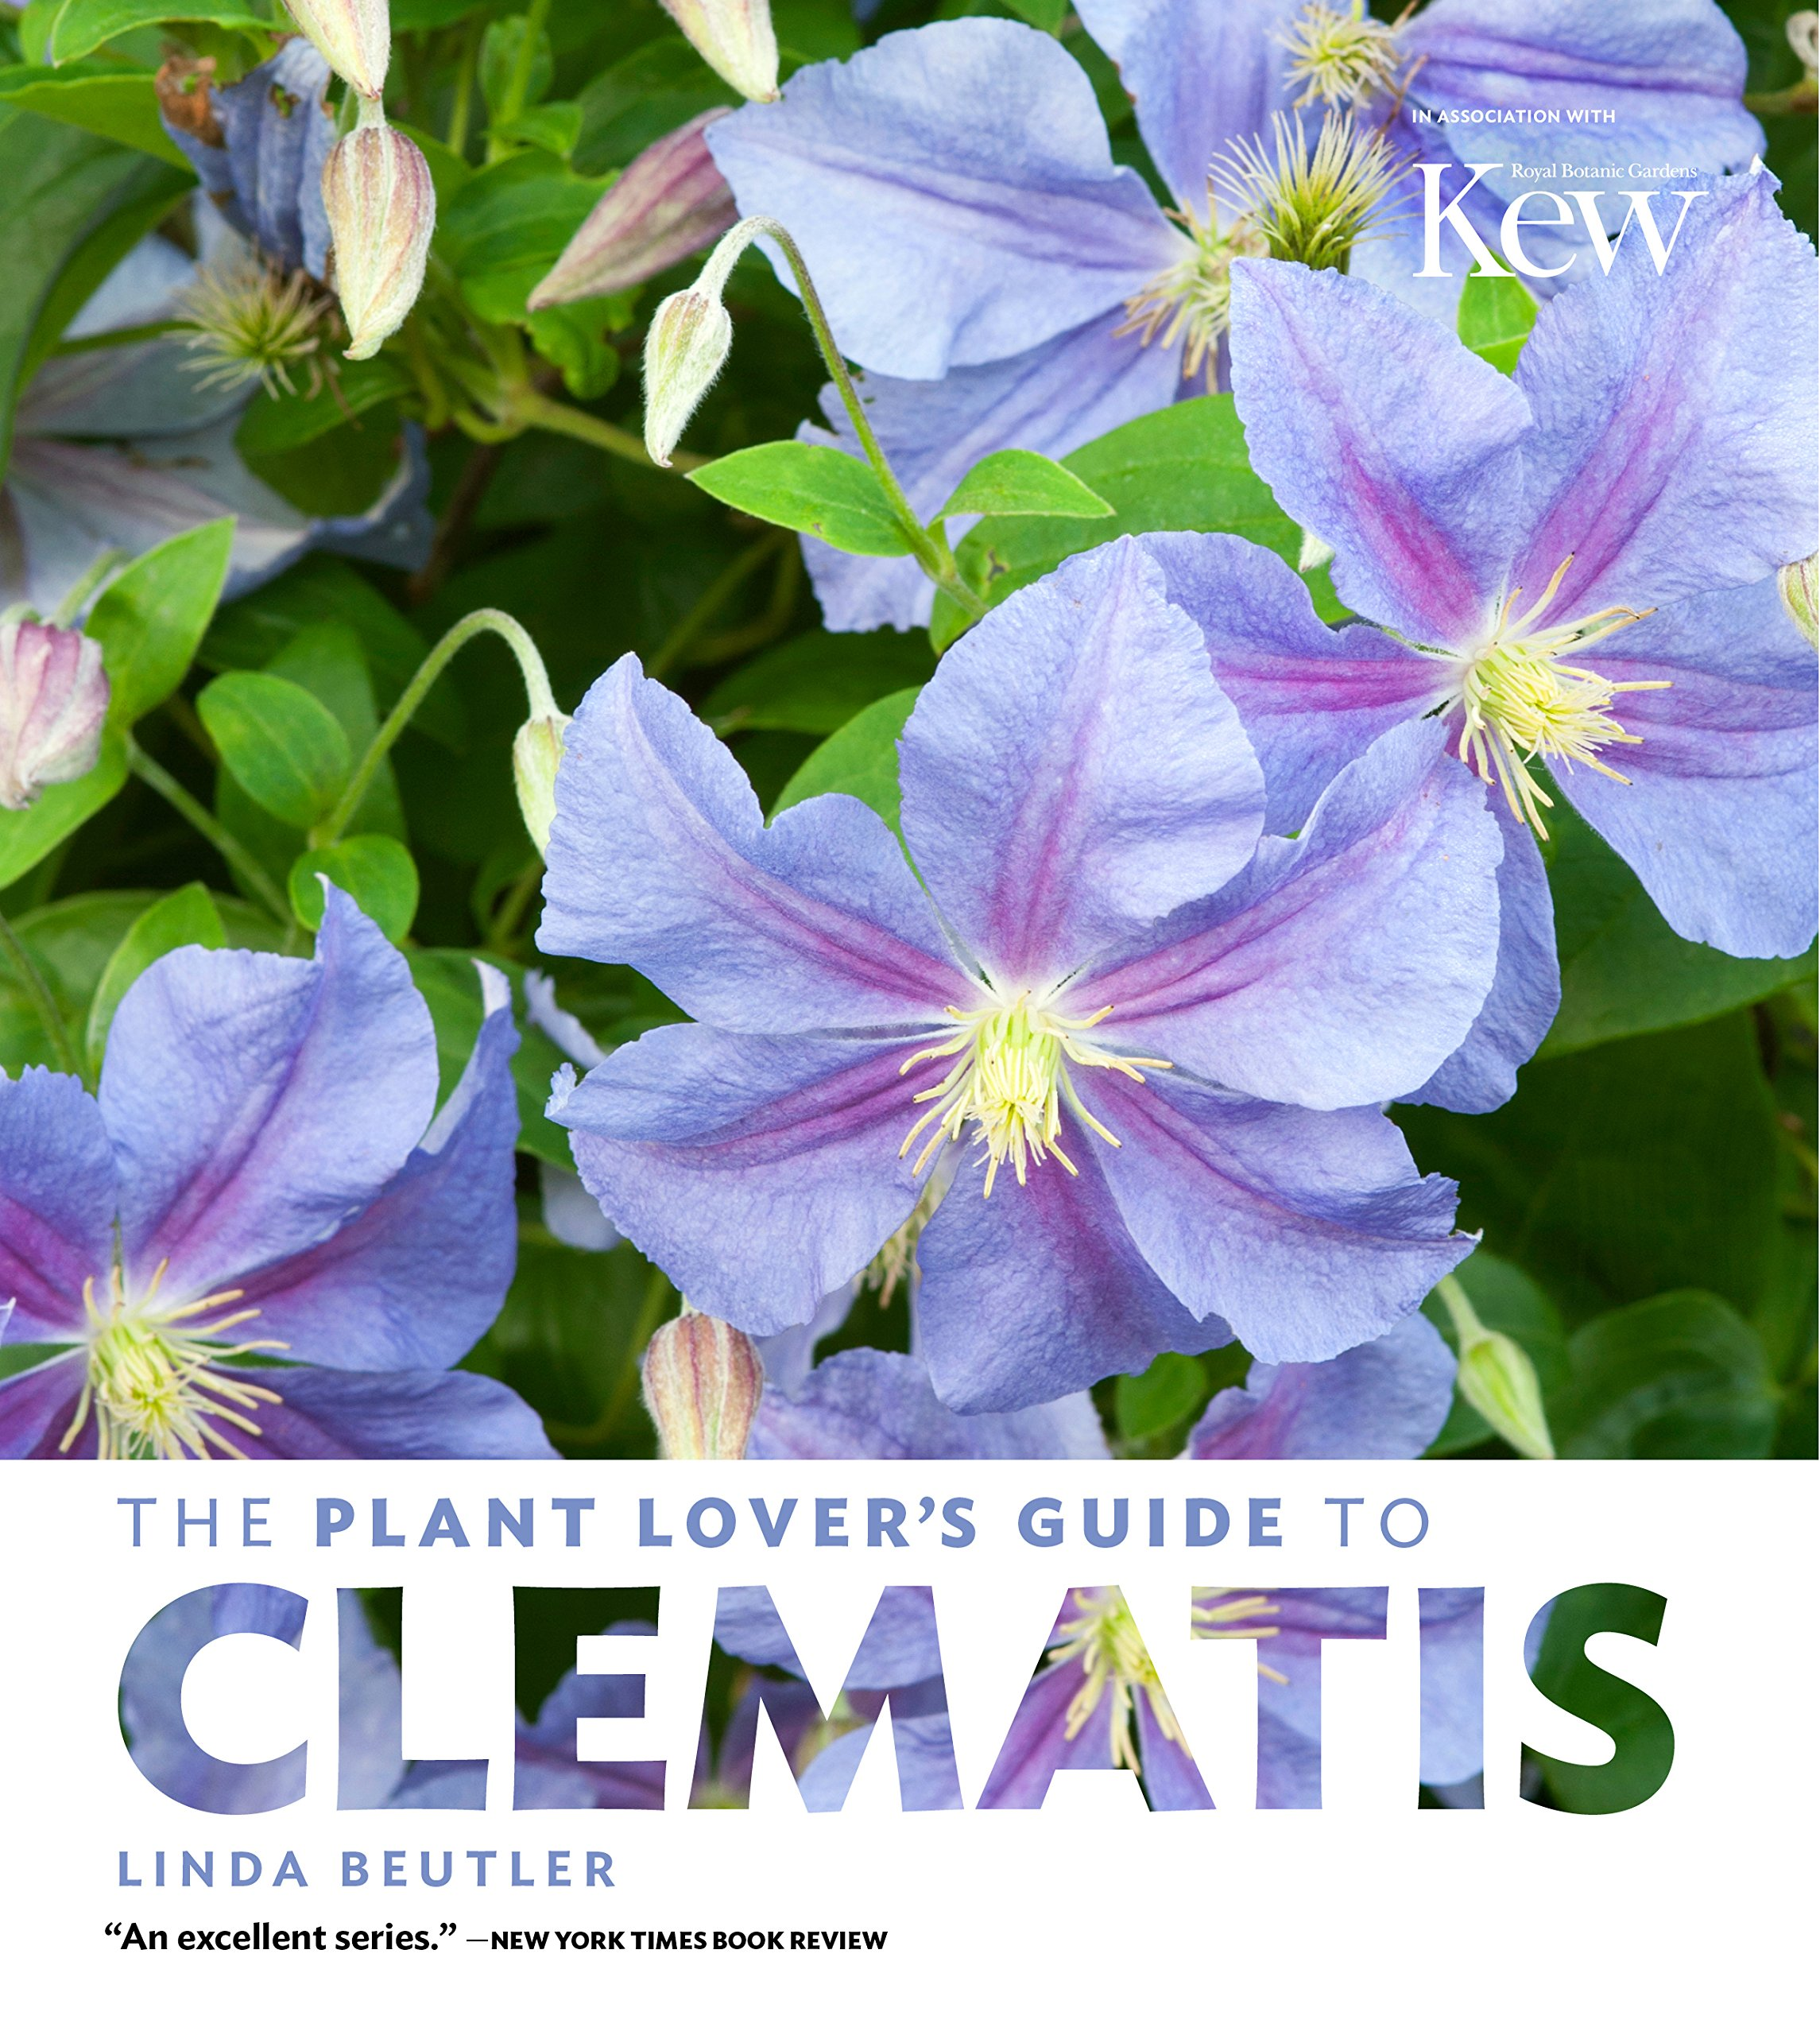 The Plant Lover's Guide to Clematis (The Plant Lover's Guides)